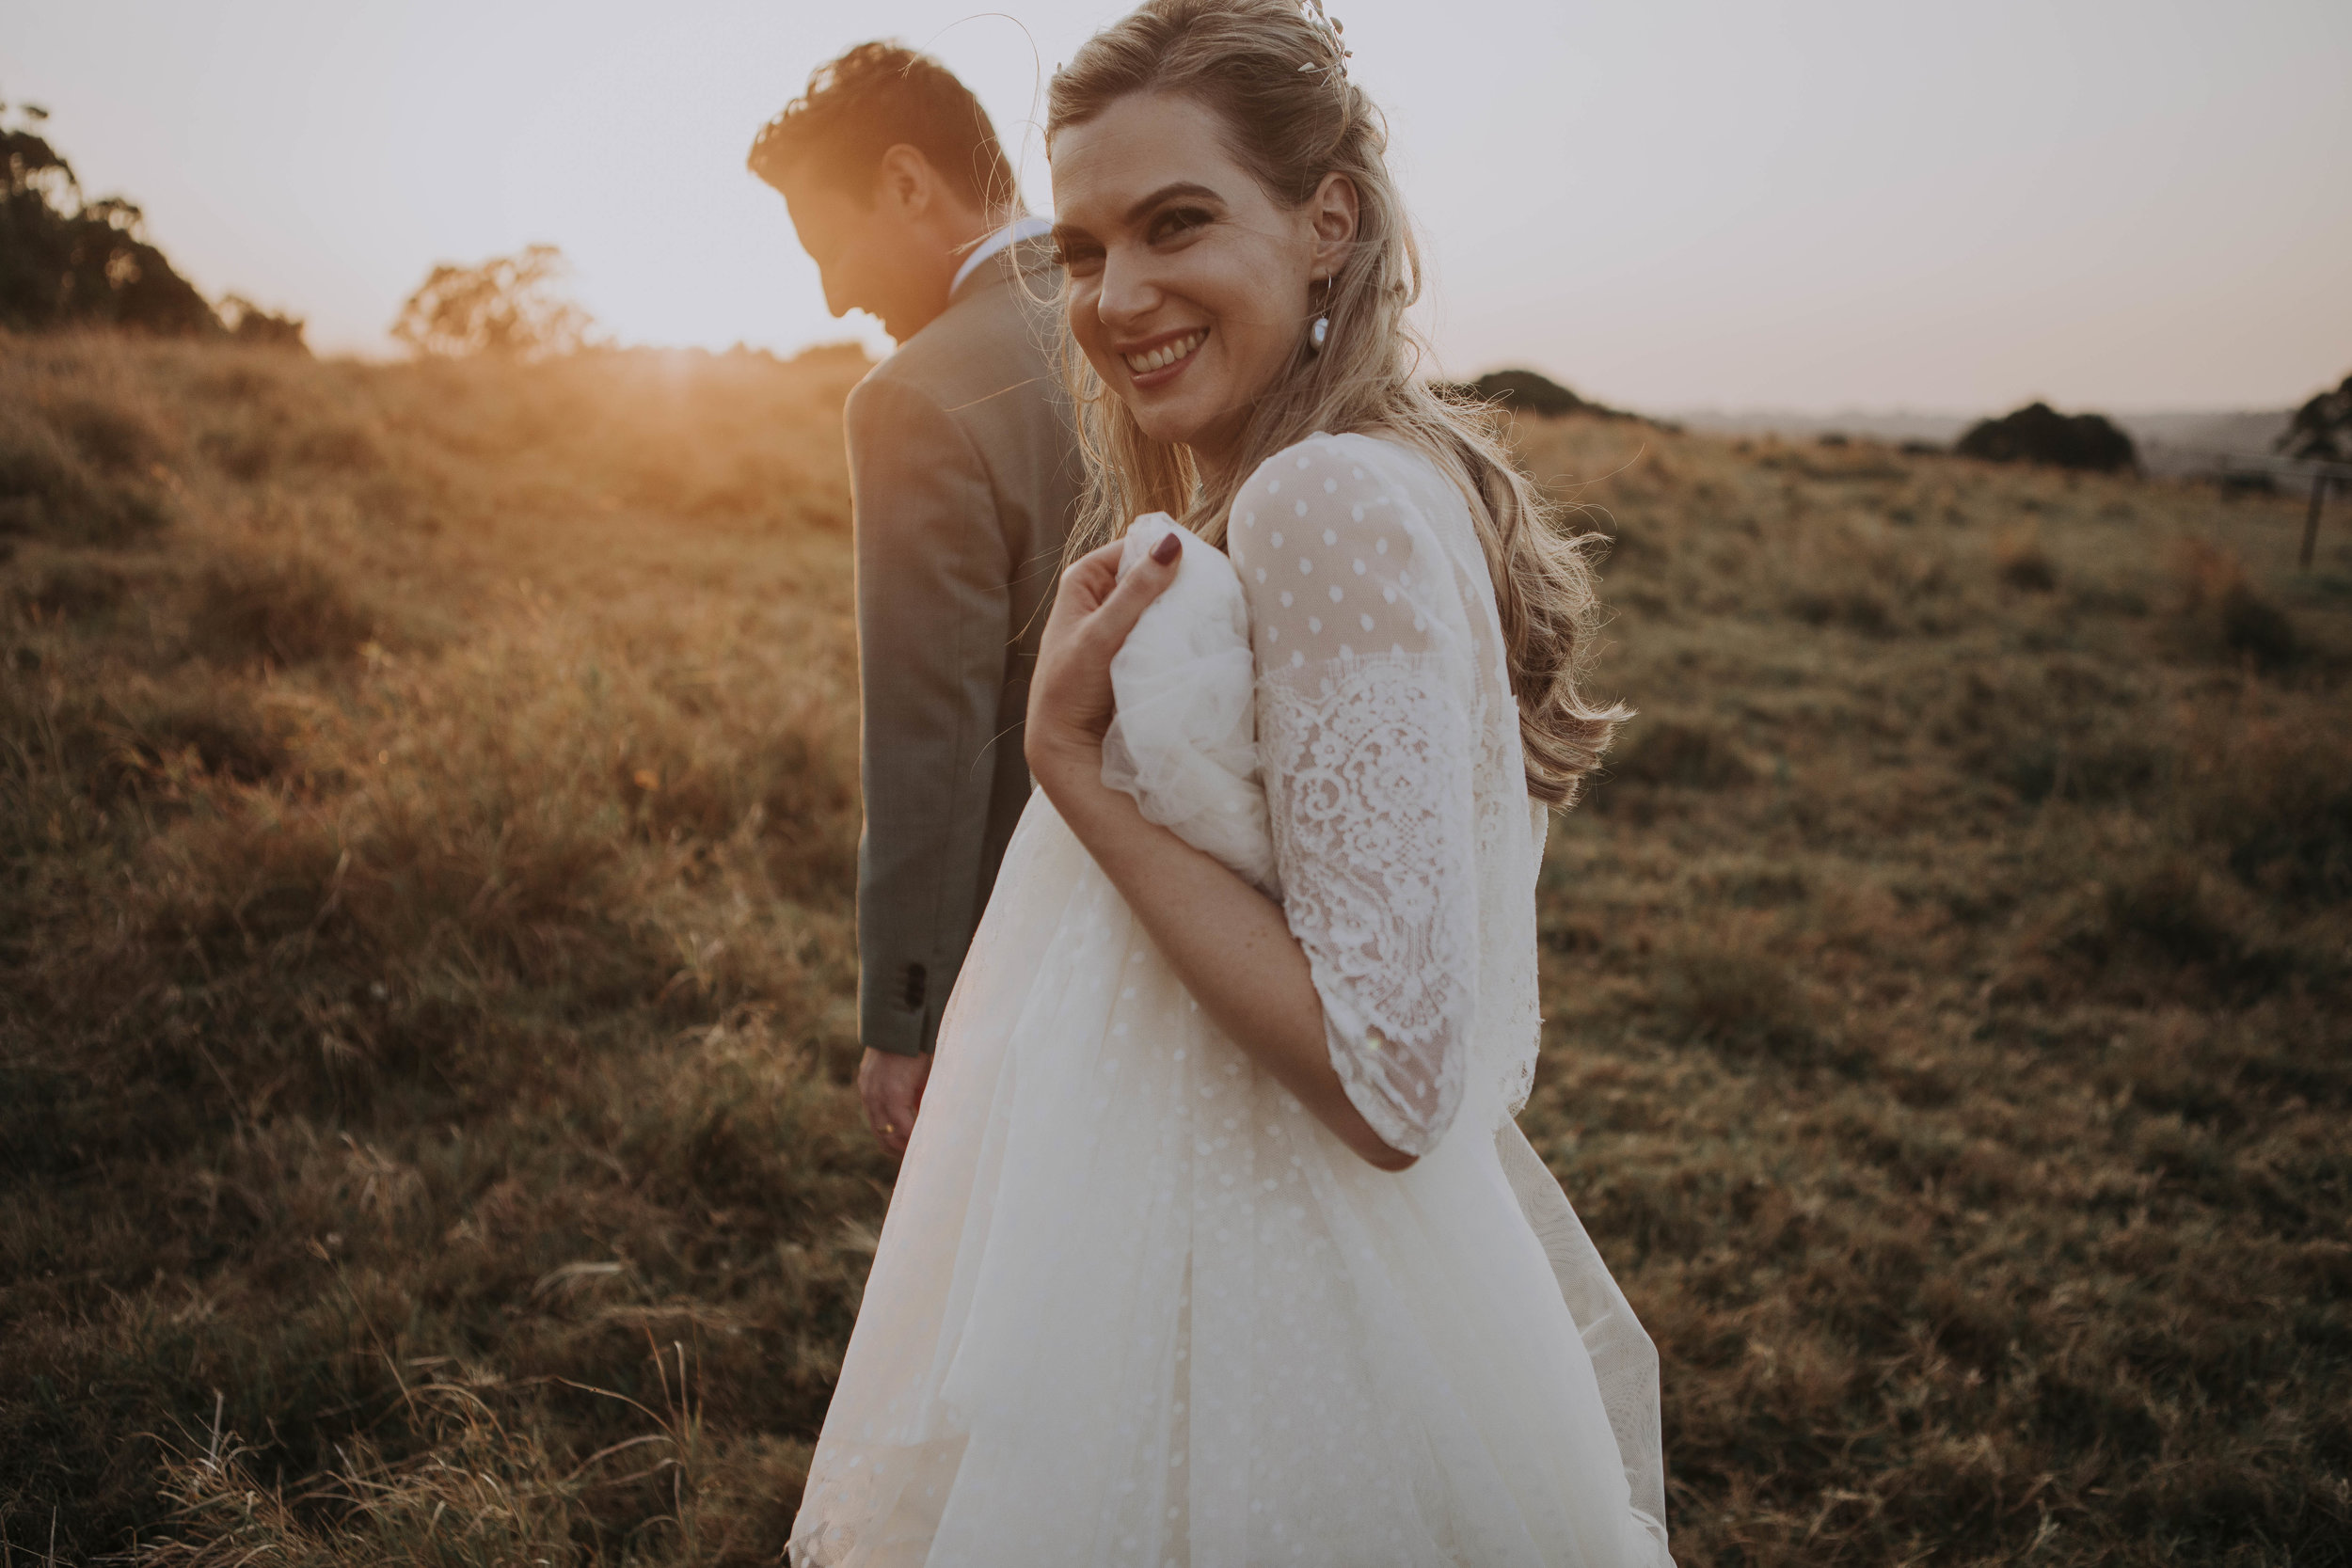 Angela and Sam - Sept 2017 - Angela was one of the sweetest brides from 2017. The gown that captured her heart was originally made in a dusty blush colour, Angela trusted me enough to create it in an ivory (site unseen) for her big day. I am glad to say we were both extremely happy with the final product.Images by Jessie DainesVenue The Earth HouseFlorals Elyssium Blooms